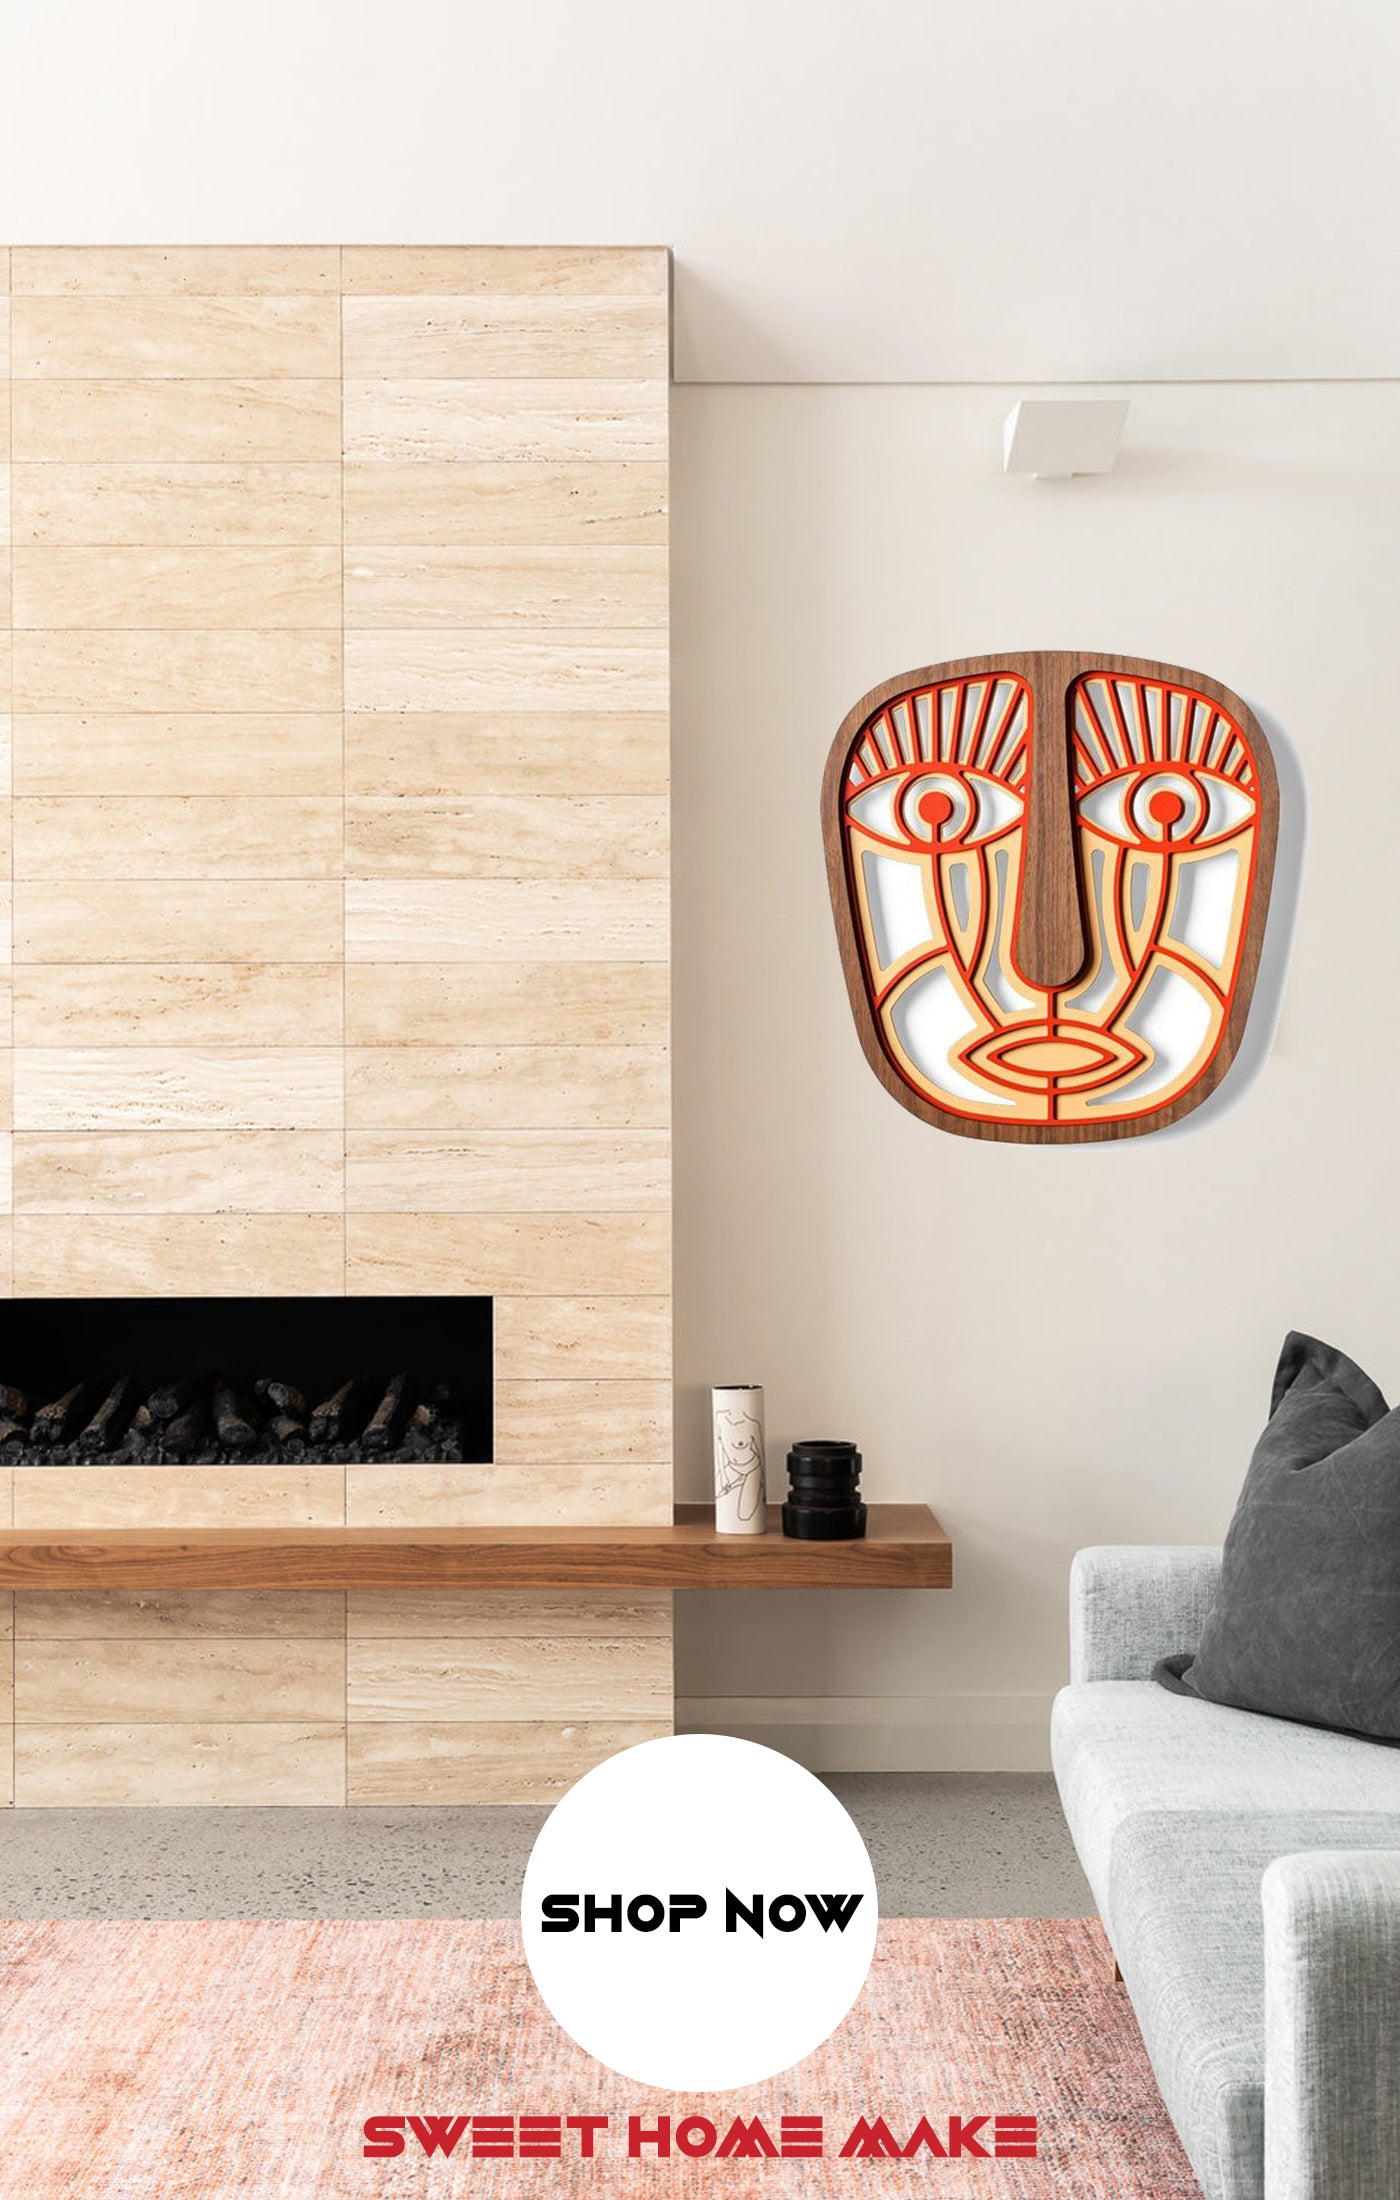 Decorative Wall Mask Wood Wall Art at the Living Room Wall Decor